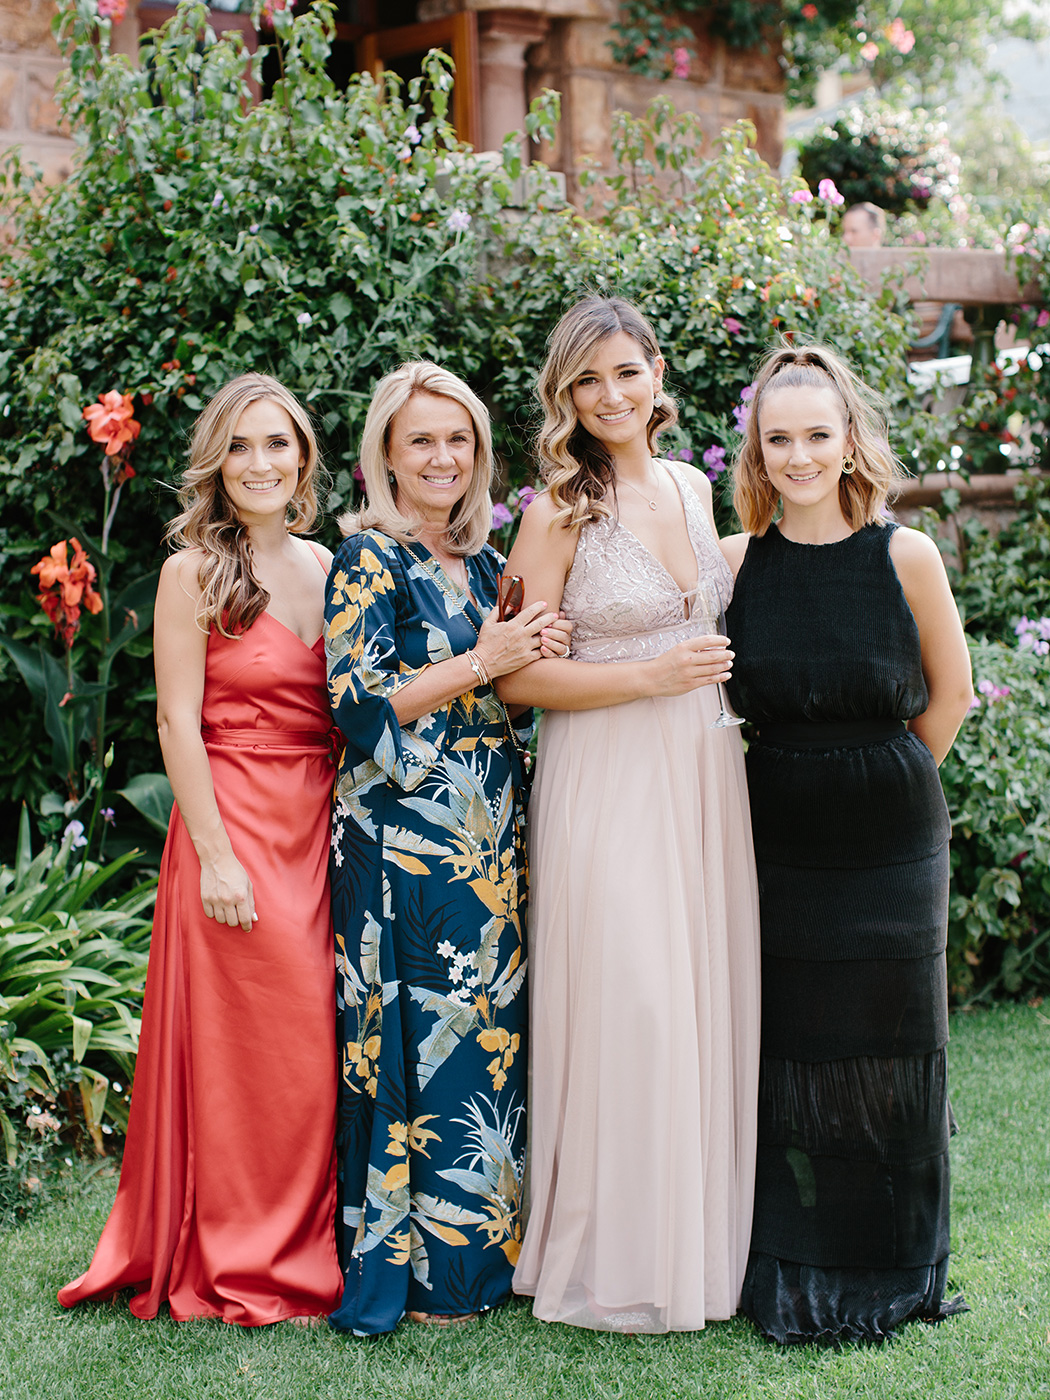 Wedding Guests | Rensche Mari Photography